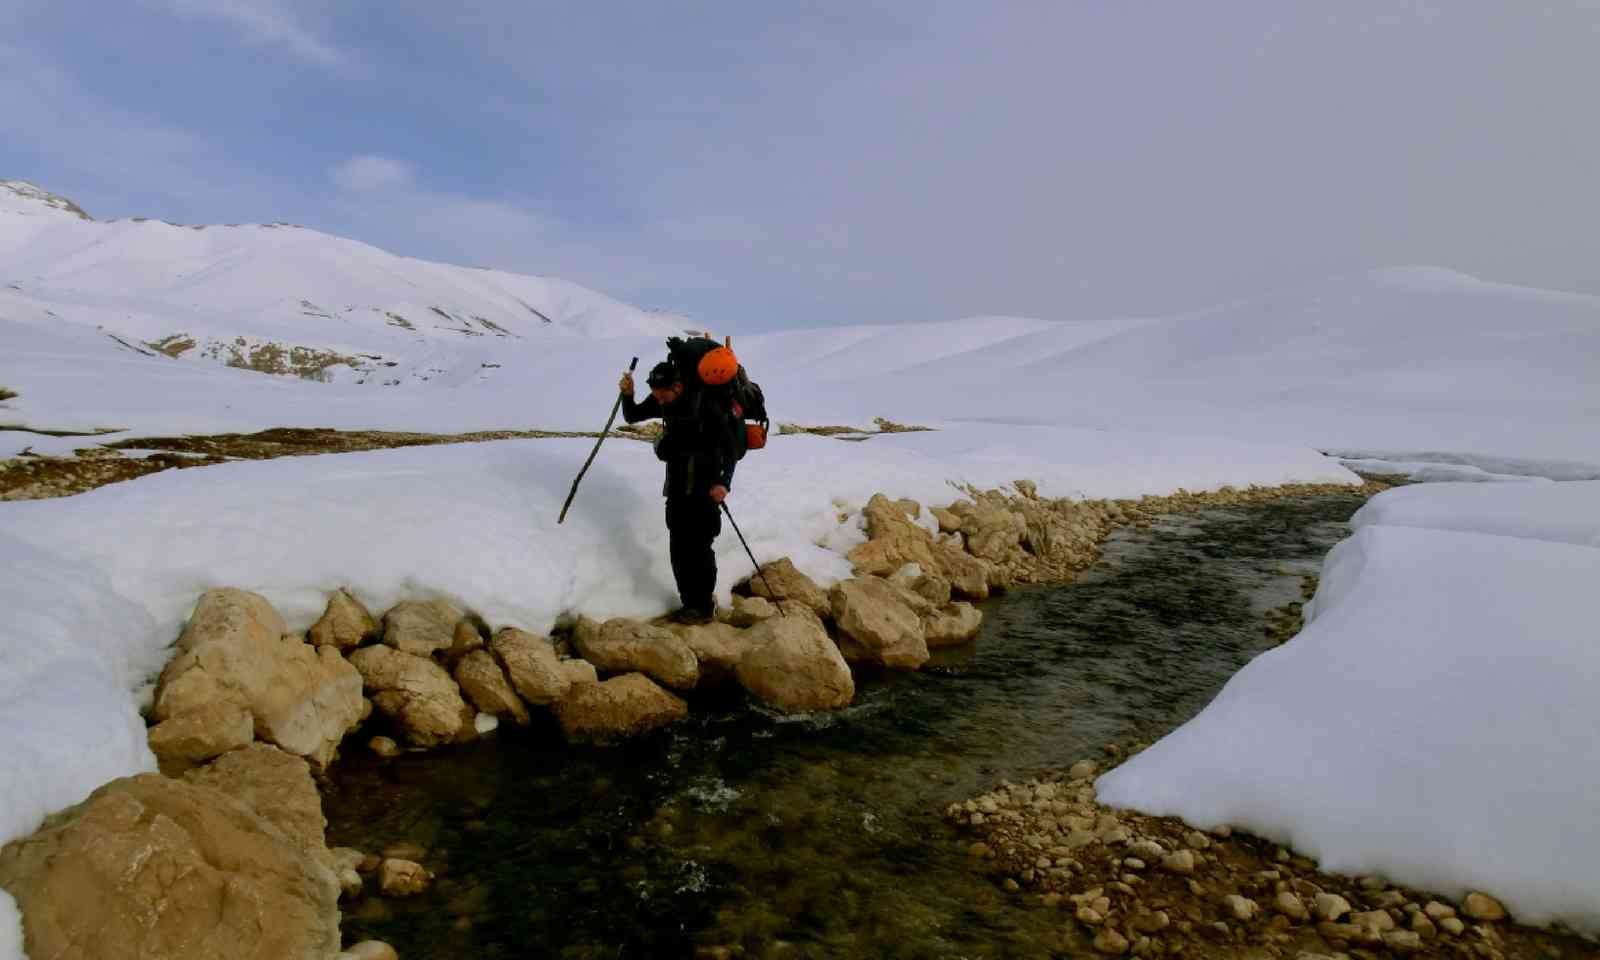 Setting off, at the source of the Karun river